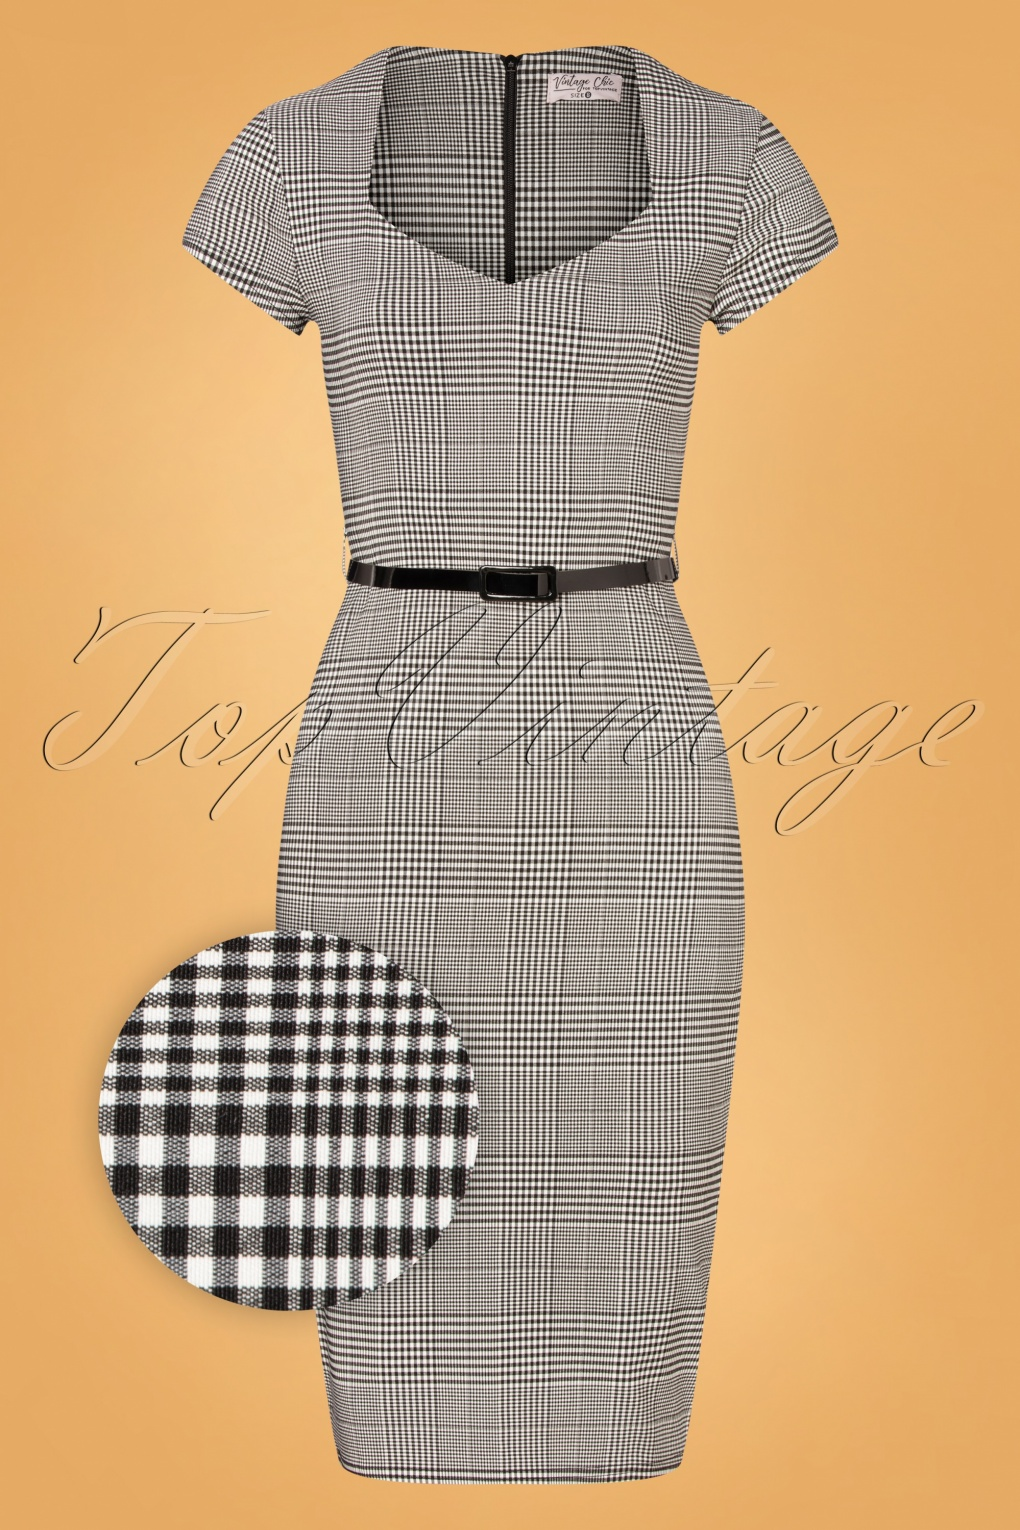 1950s Dresses, 50s Dresses | 1950s Style Dresses 50s Melany Houndstooth Pencil Dress in Black and White £58.35 AT vintagedancer.com